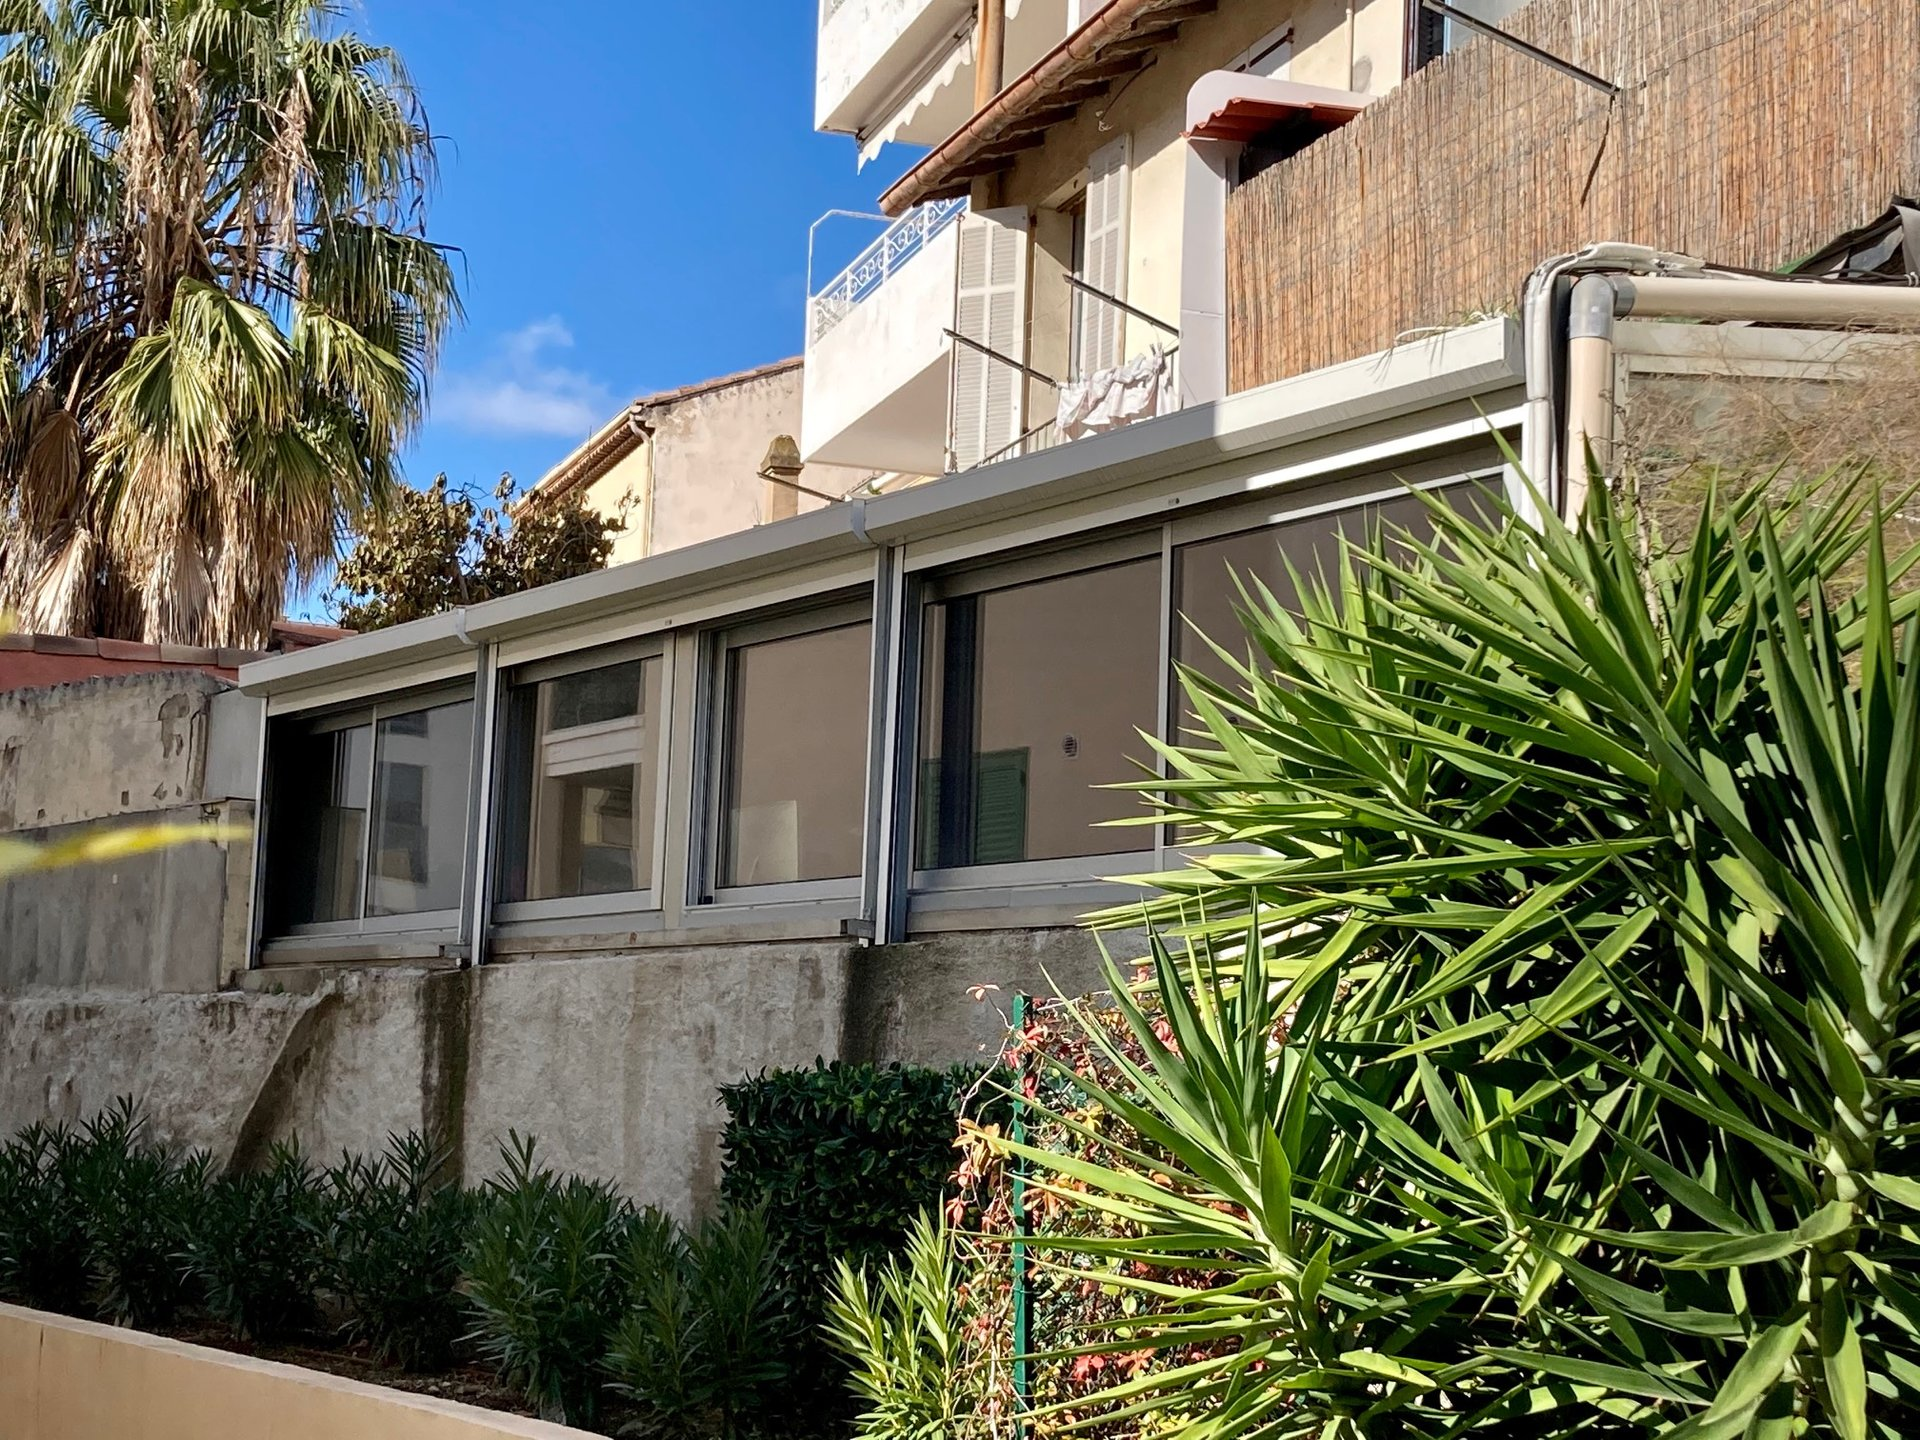 CANNES PALM BEACH Commercial space convertible into 82 m2 apartment